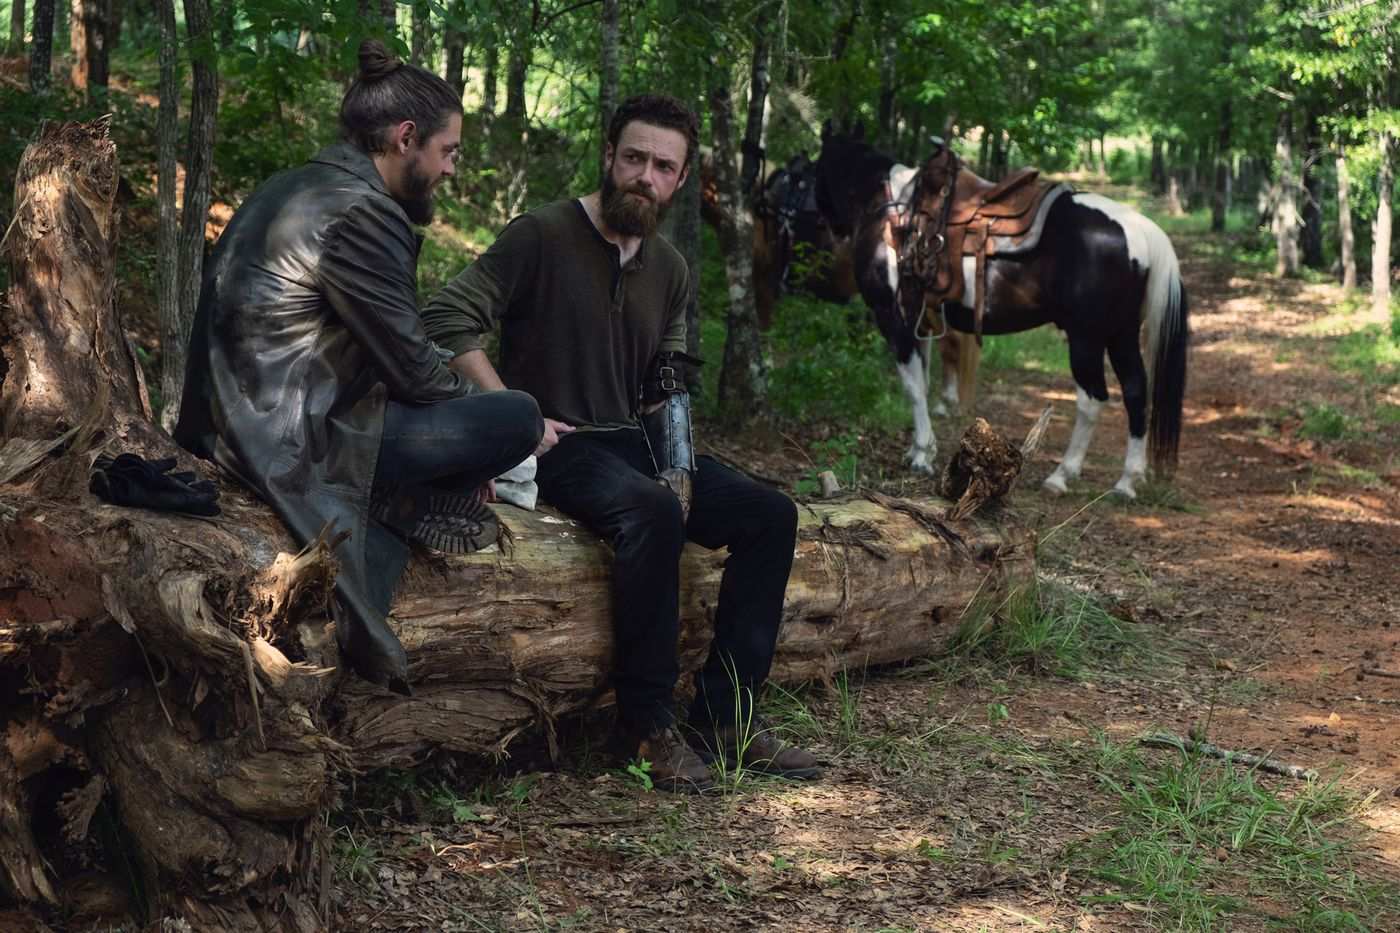 The Walking Dead Finds Its Groove Without Rick Grimes The